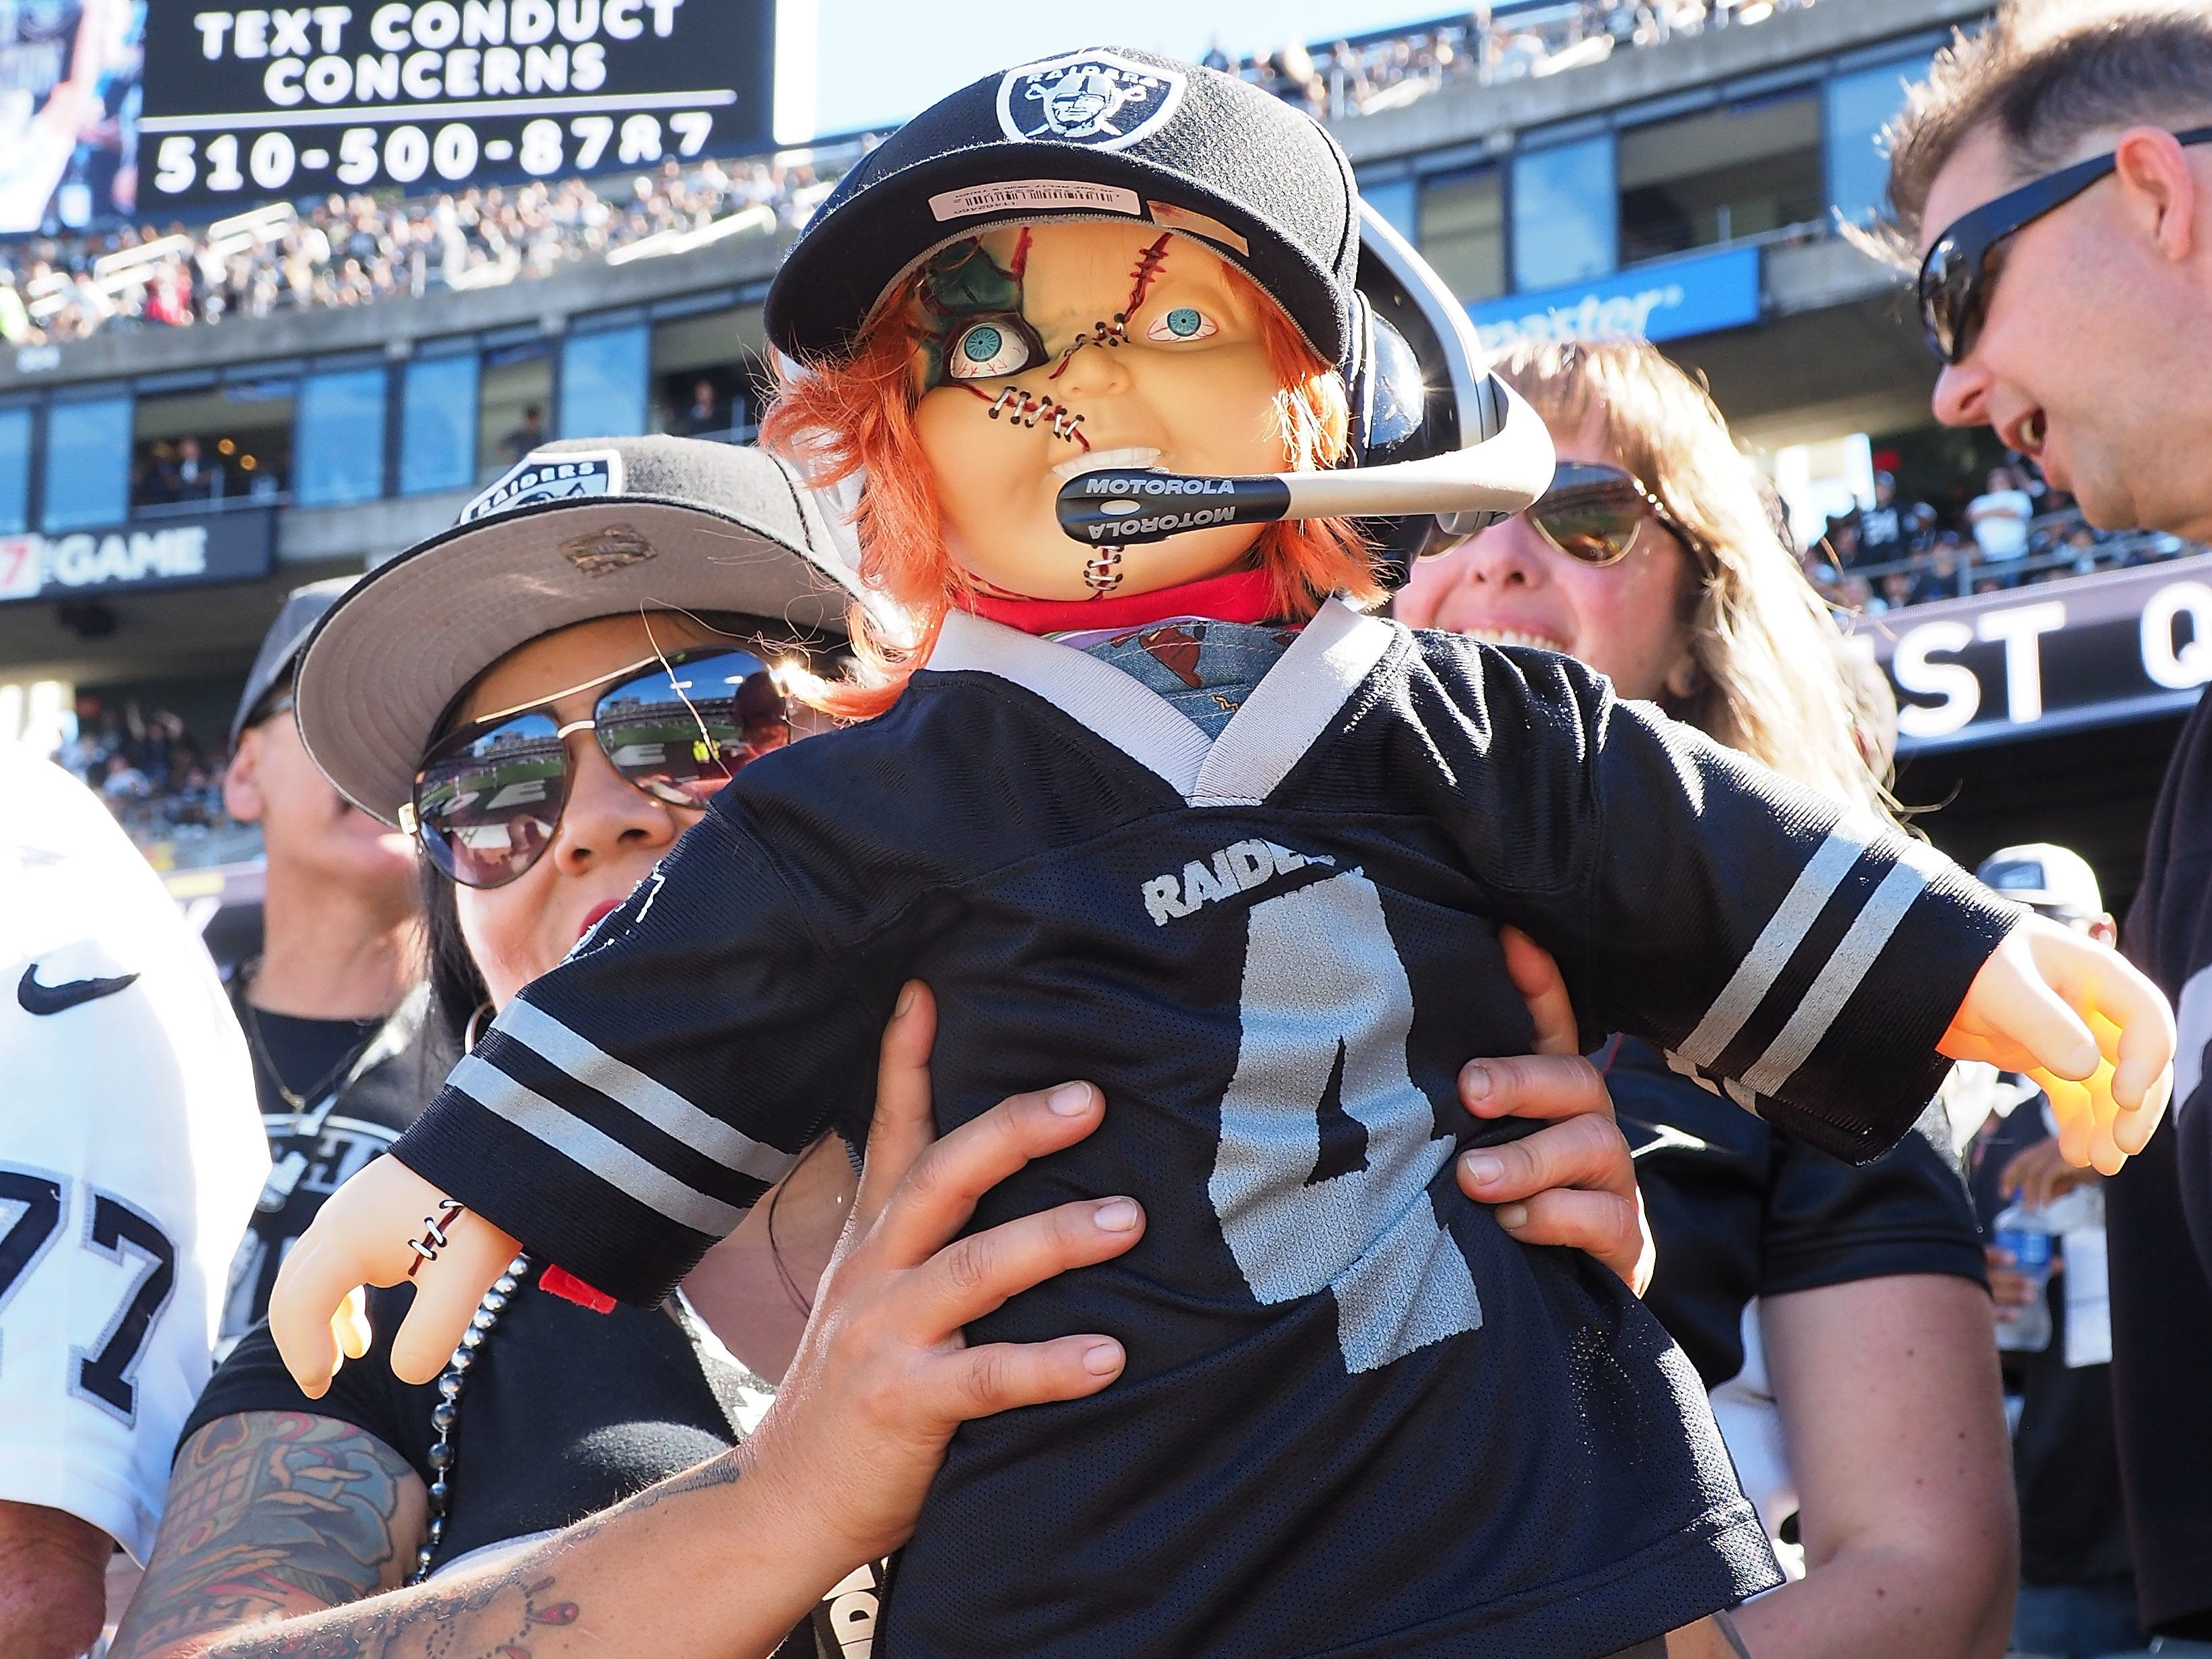 An Oakland Raiders fan holds a Chuckie doll before the game against the Indianapolis Colts at Oakland Coliseum.